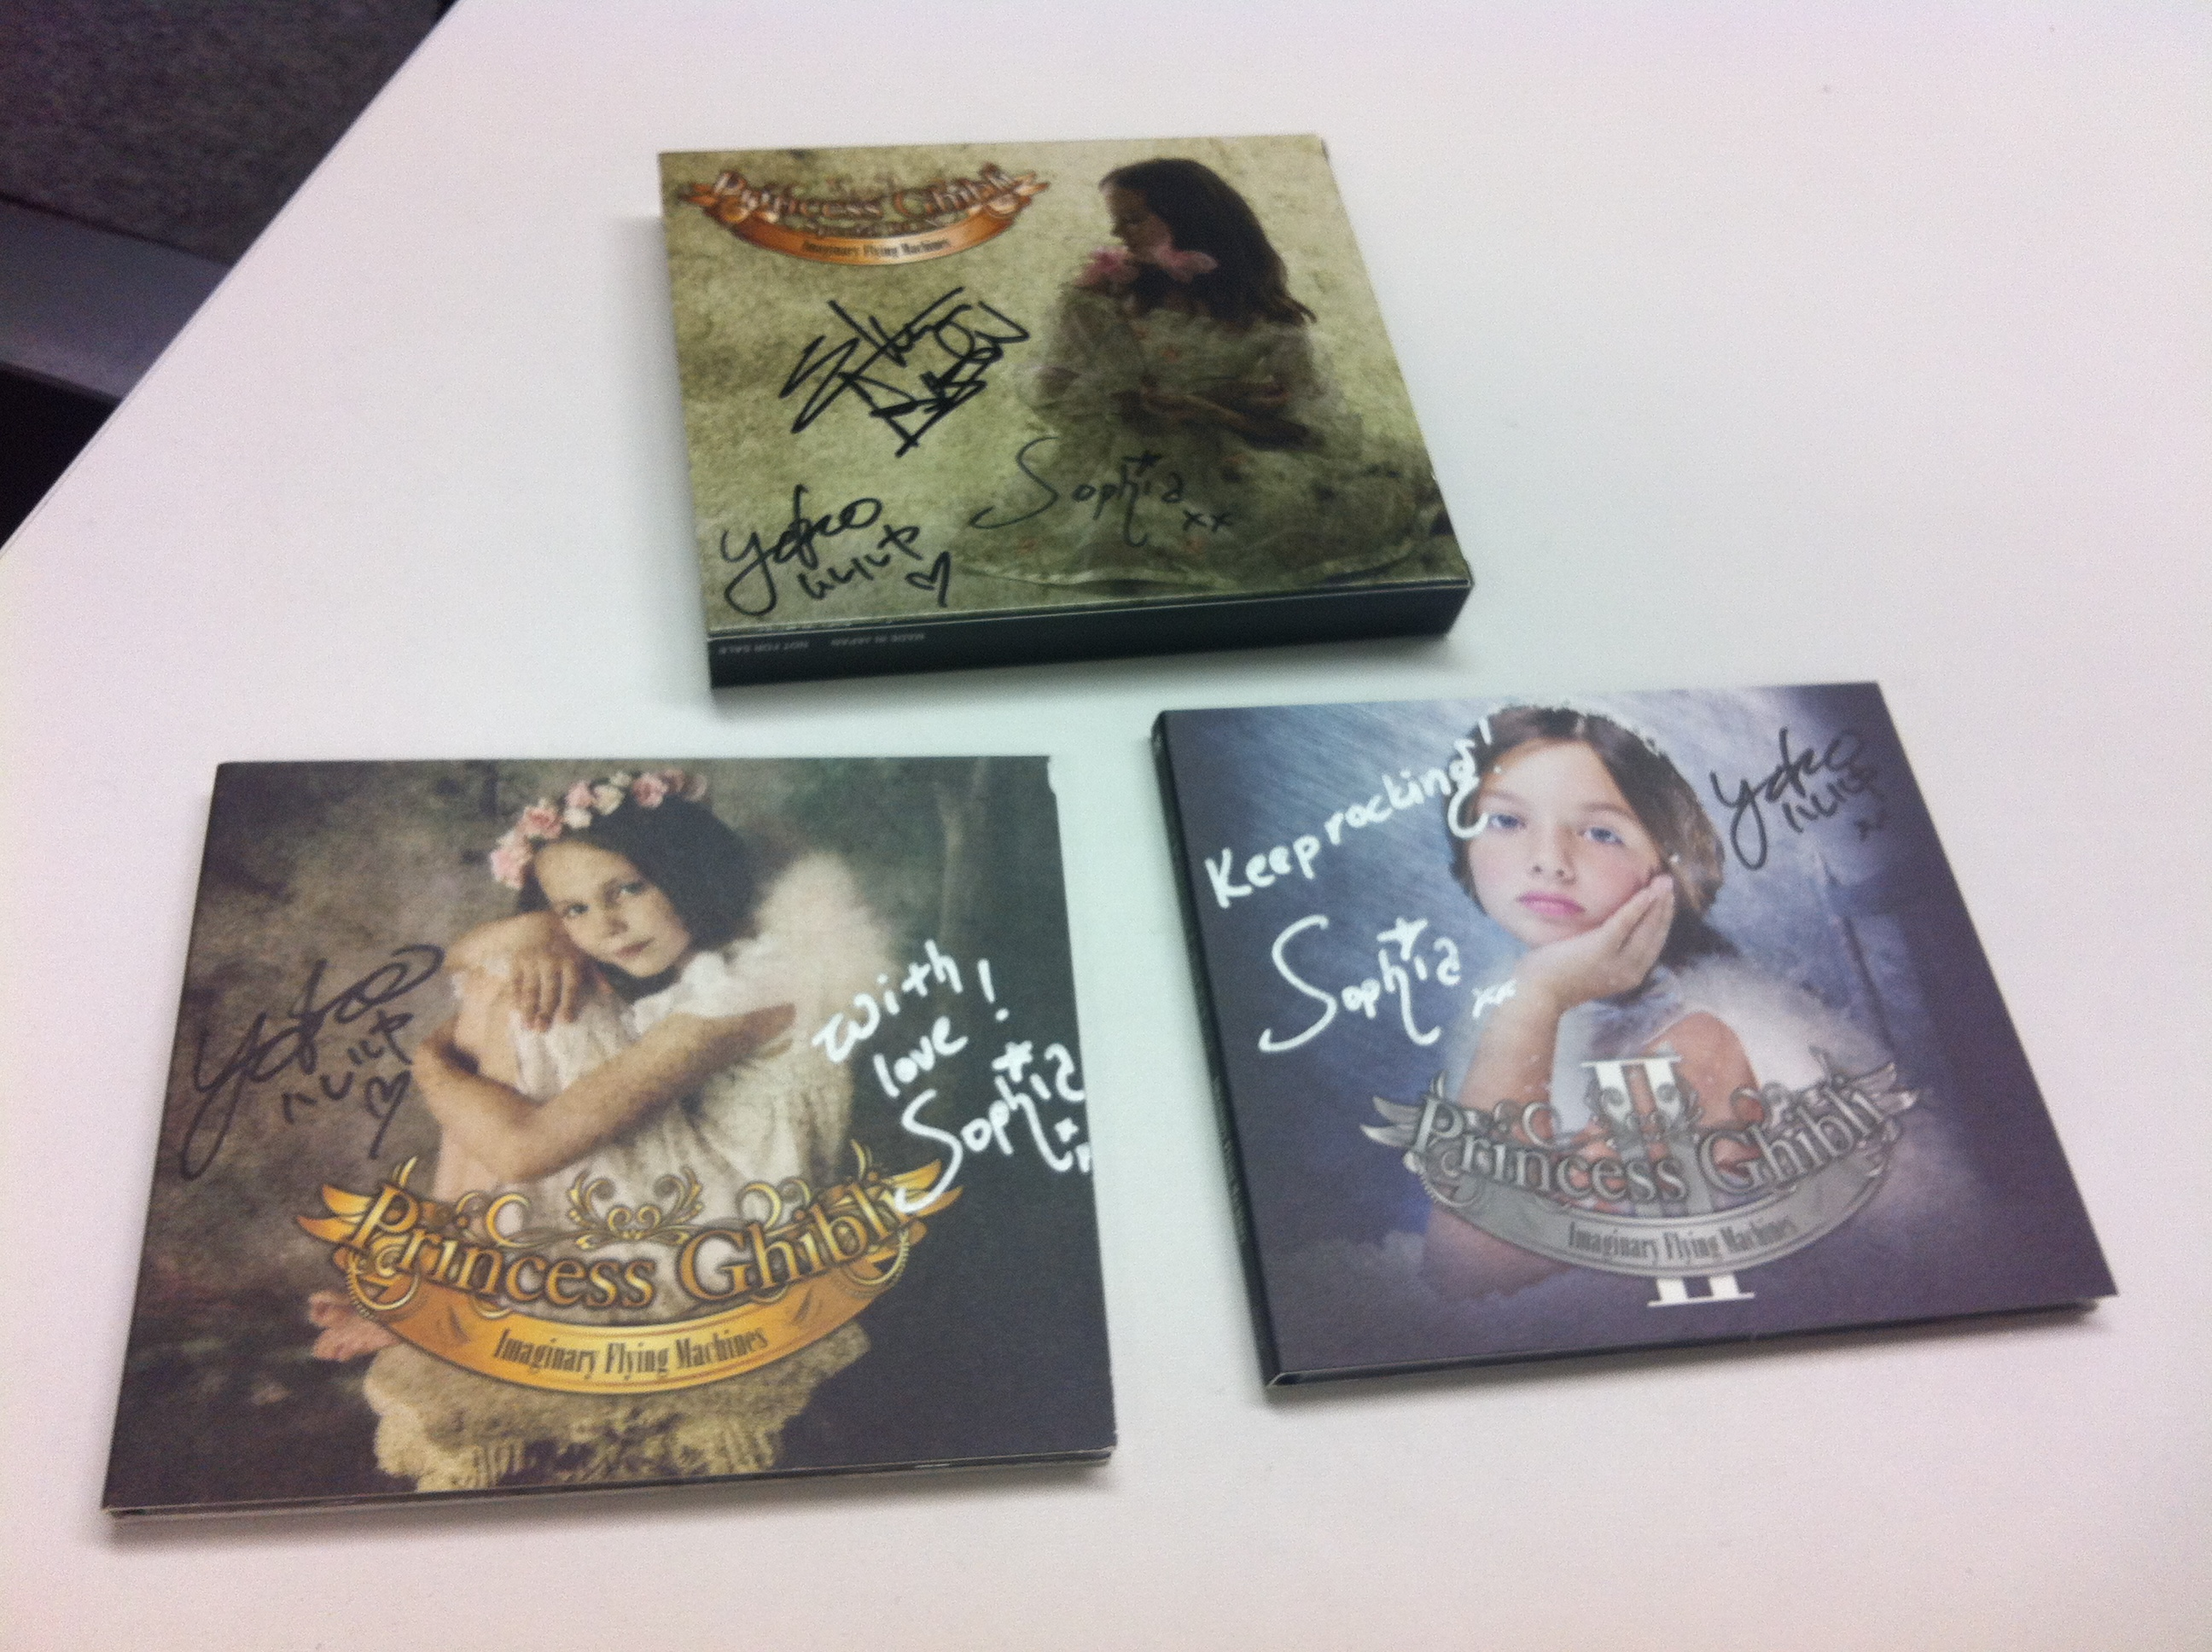 New album taken 1st place in Japan! ..and limited edition BOX CDs now on sale, + autographs here:)